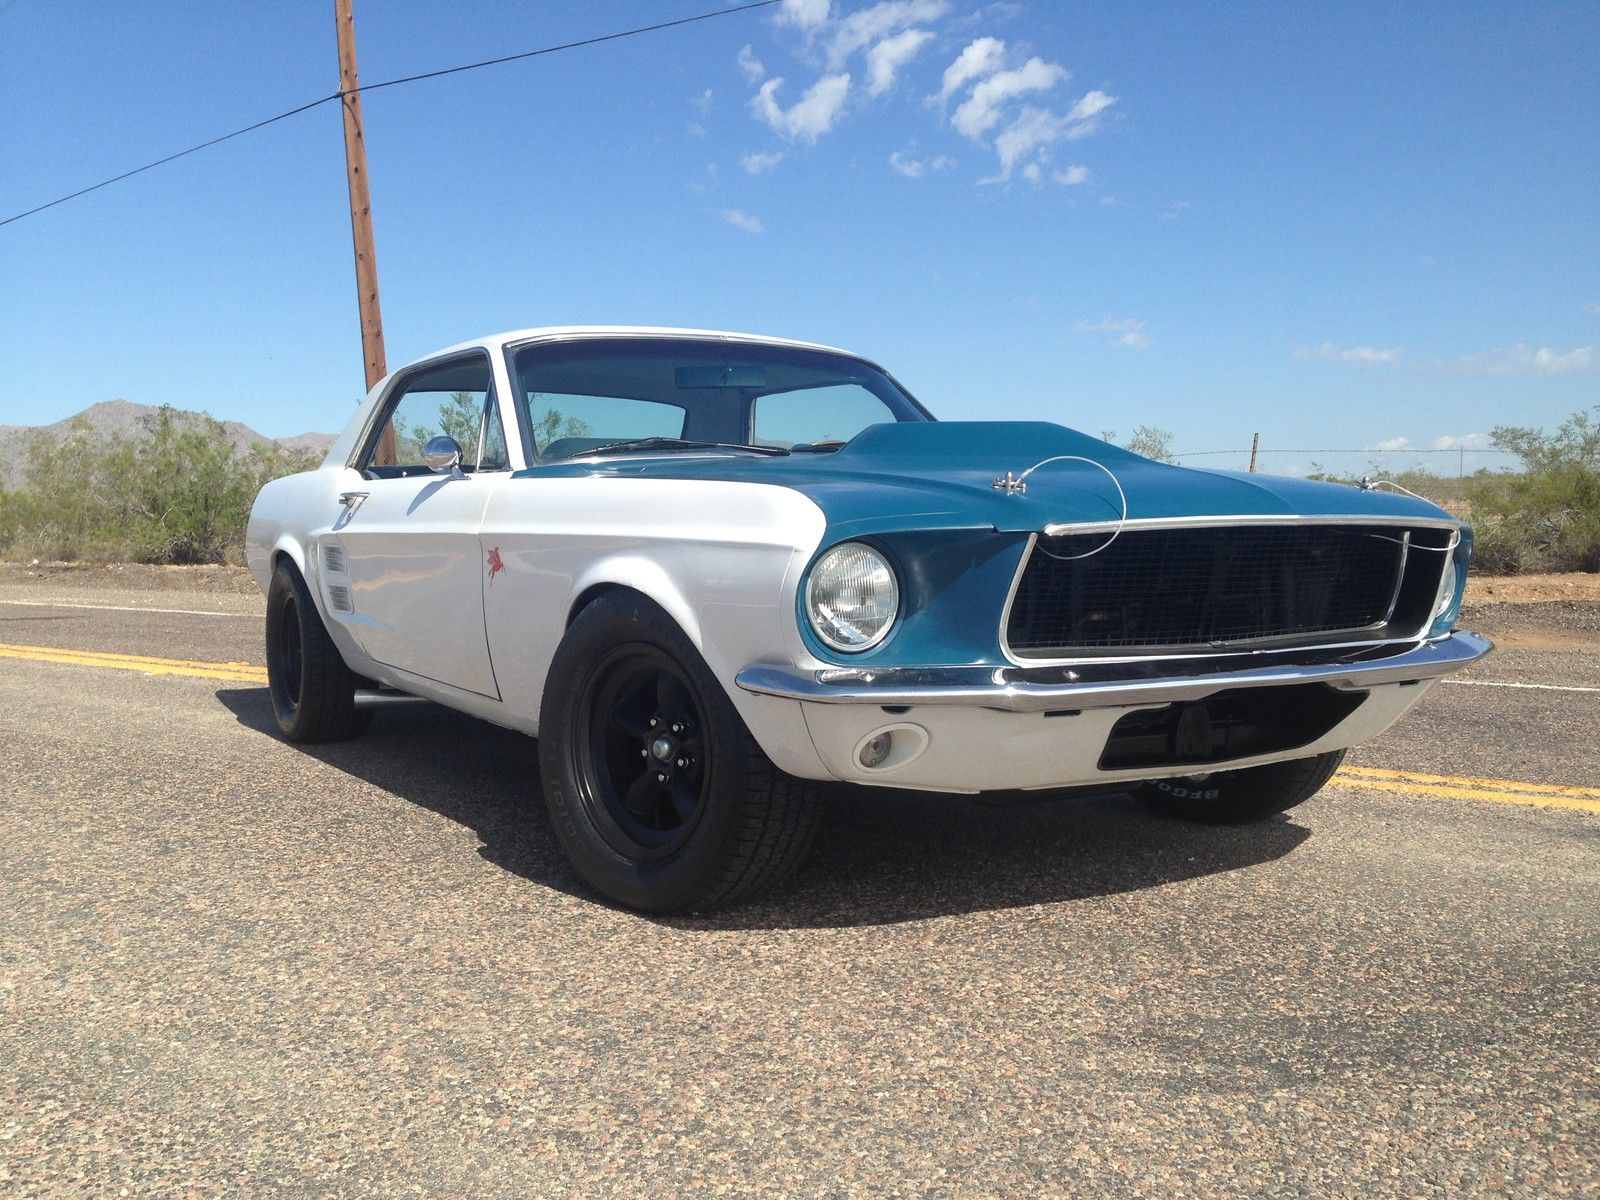 1967 ford mustang coupe gt interior road race suspension built 351 windsor a c classic ford. Black Bedroom Furniture Sets. Home Design Ideas